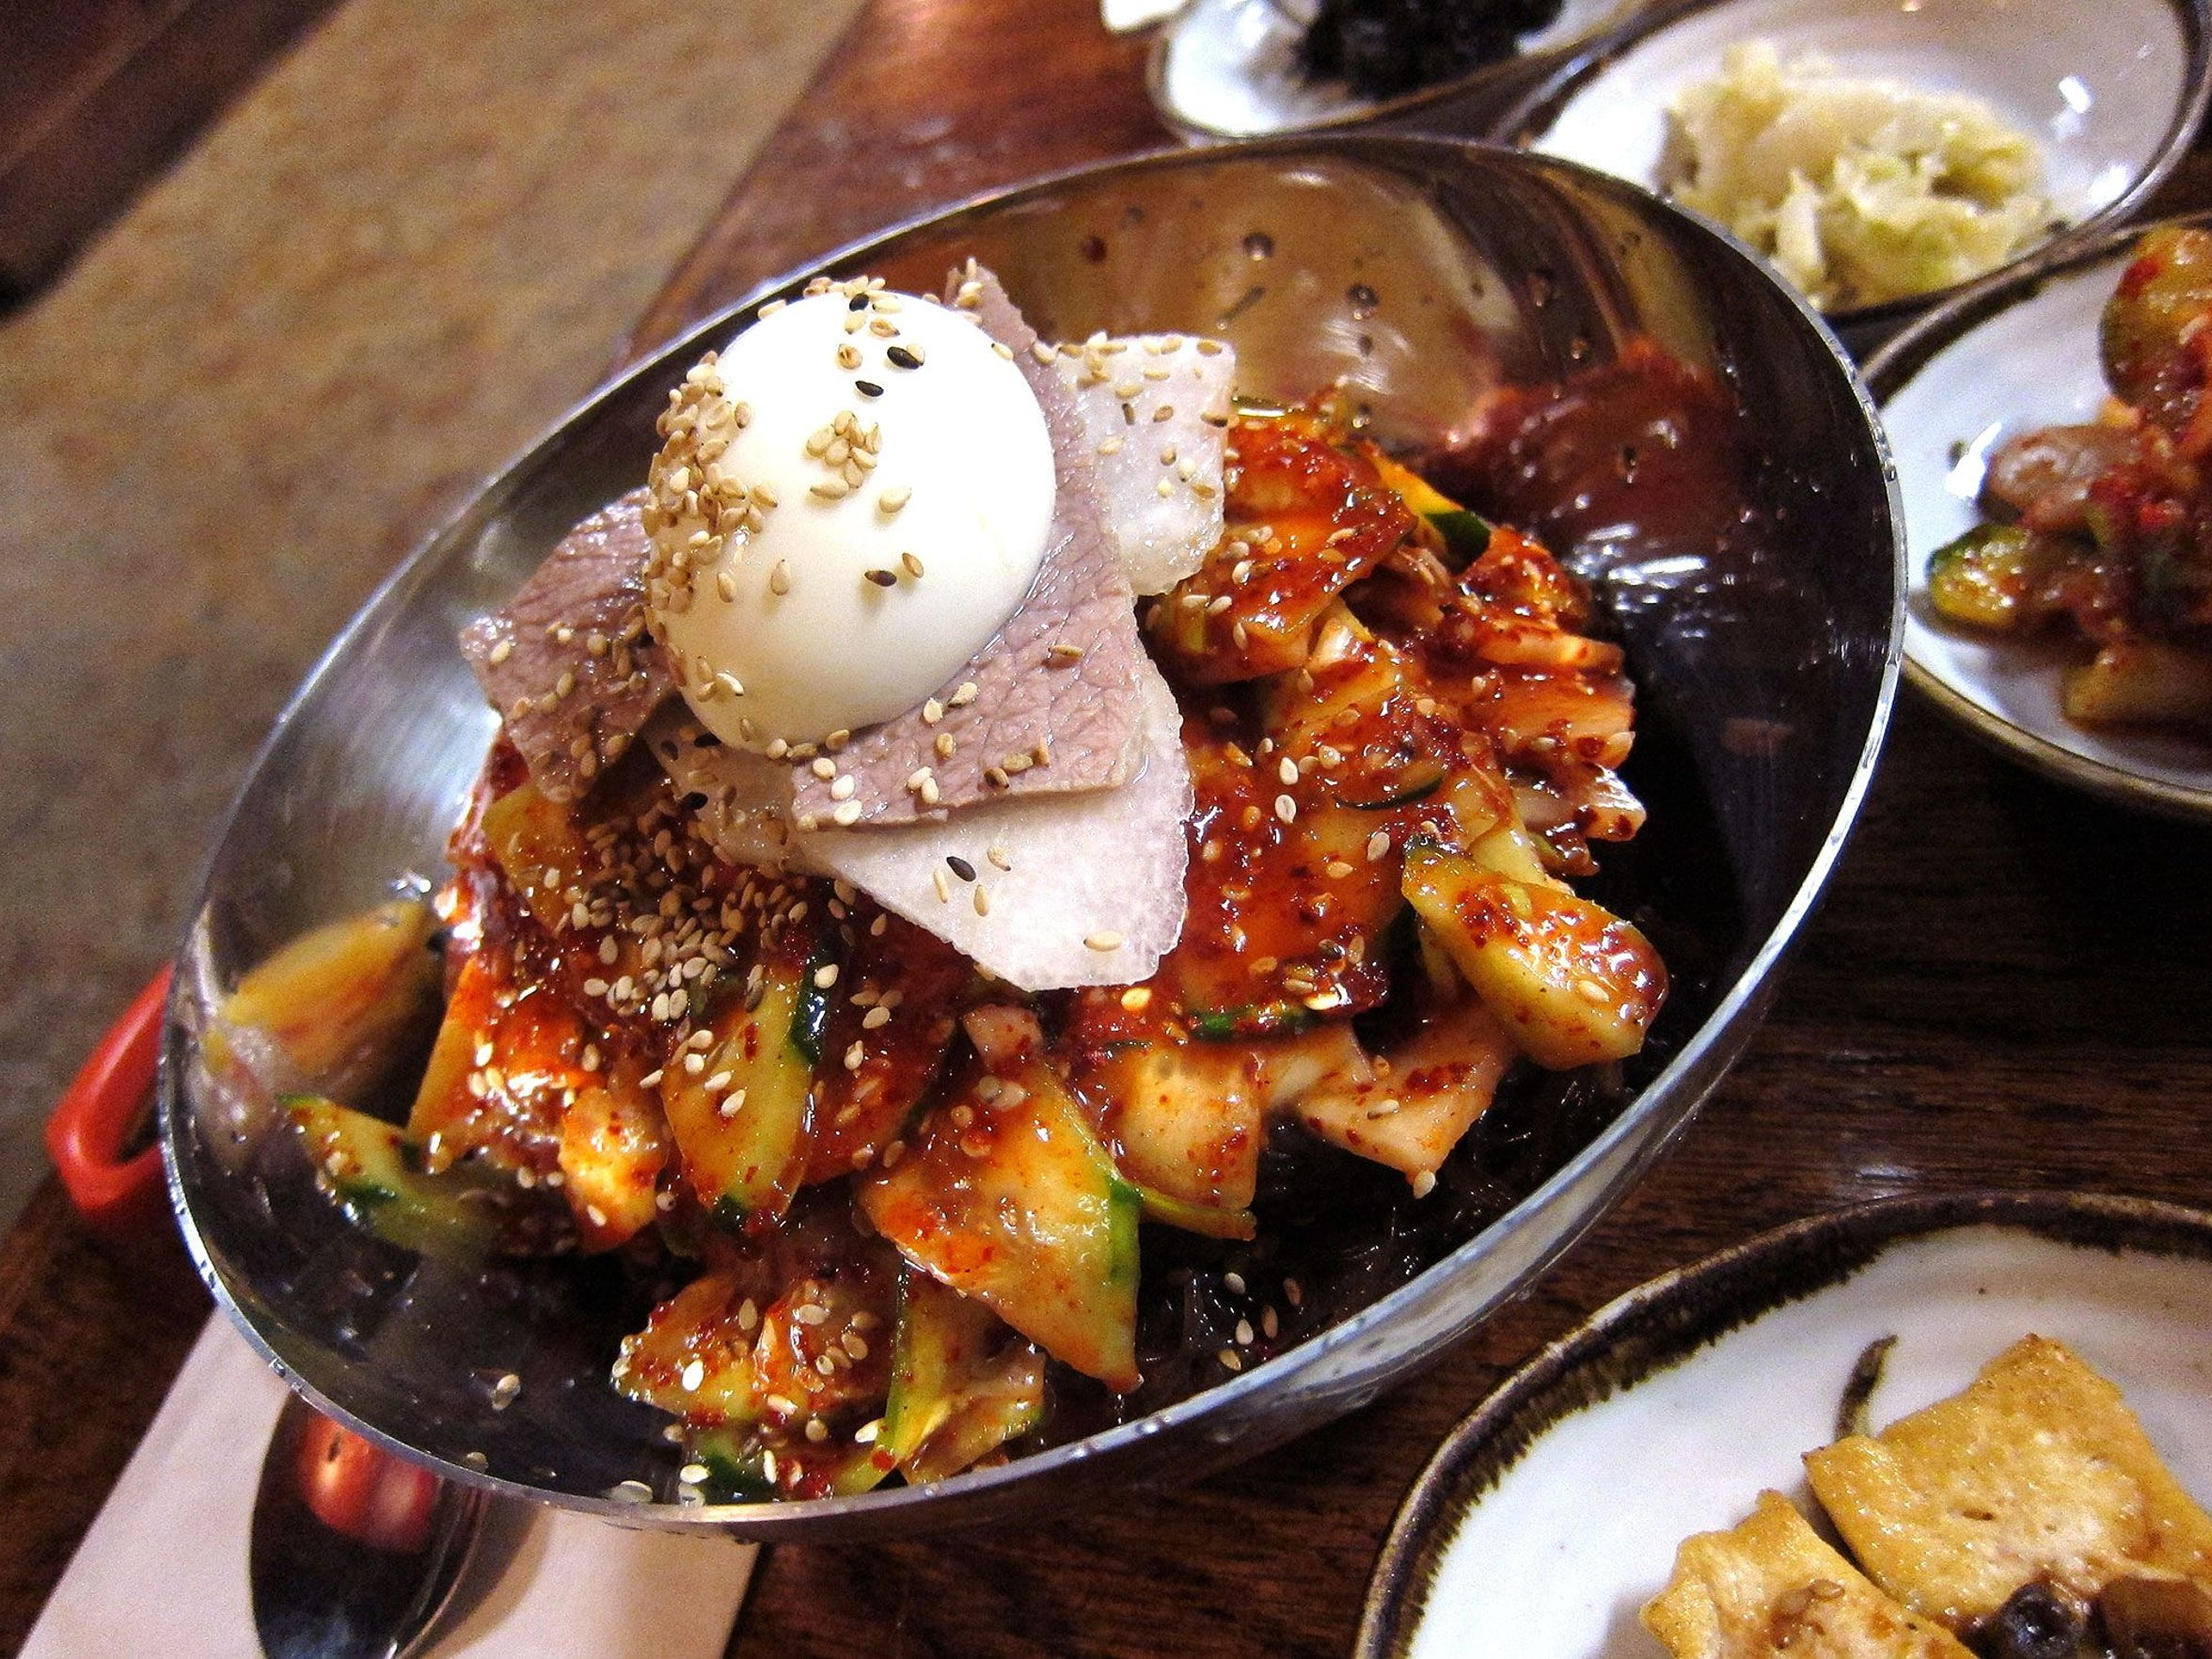 Open until 2 a.m. Tuesdays through Sundays, Cafe Ga Hyang has outstanding Korean fare.